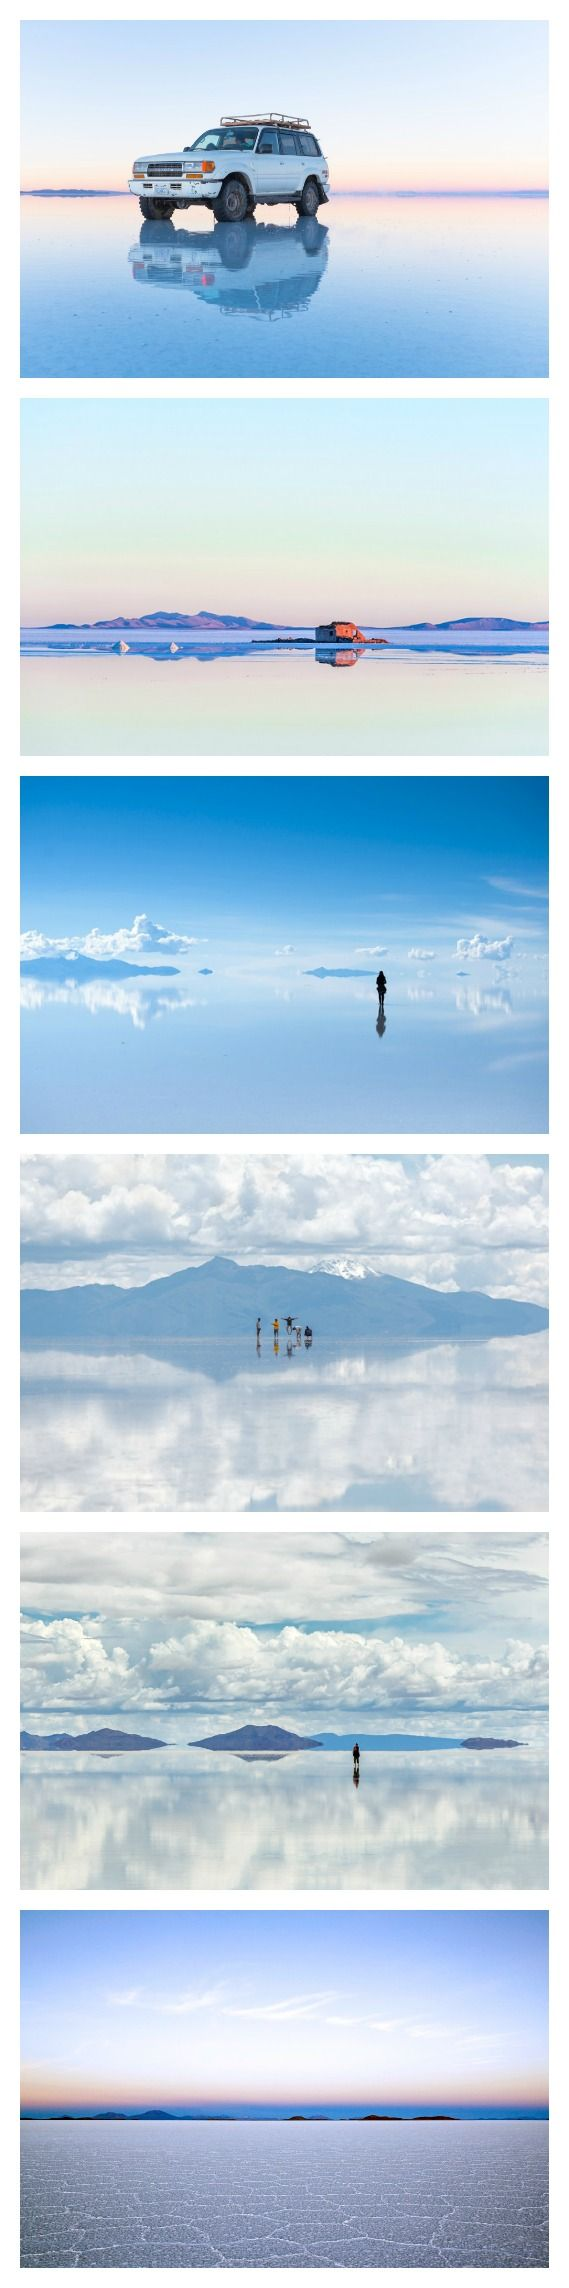 Bolivia's Salt Flats Are the Closest You'll Get to Heaven on Earth || Experience them for yourself on one of our South American projects https://www.questoverseas.com/gap-quest/